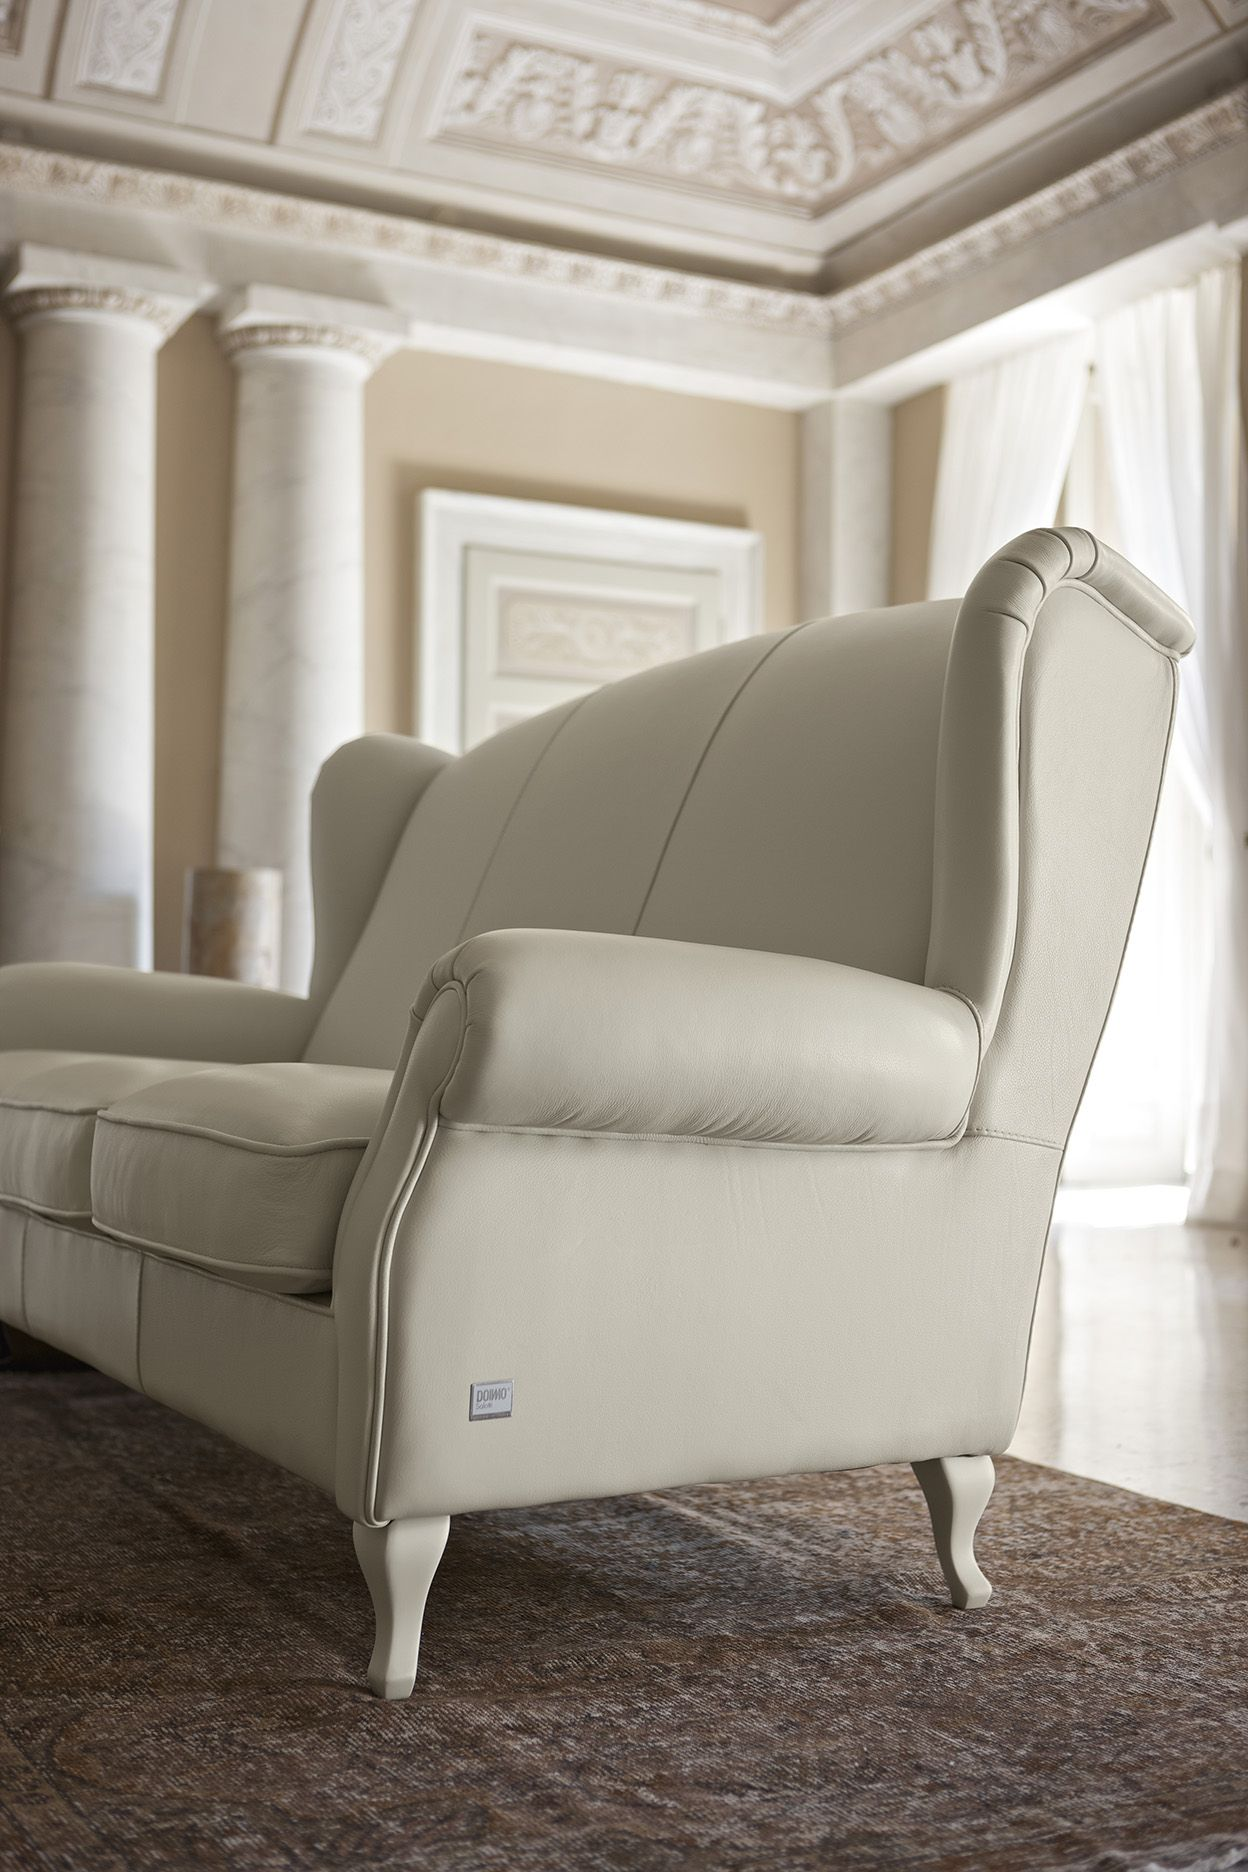 Divani In Pelle Colorati.Bergere Doimo Salotti Armchair Tufted Or Plain Version